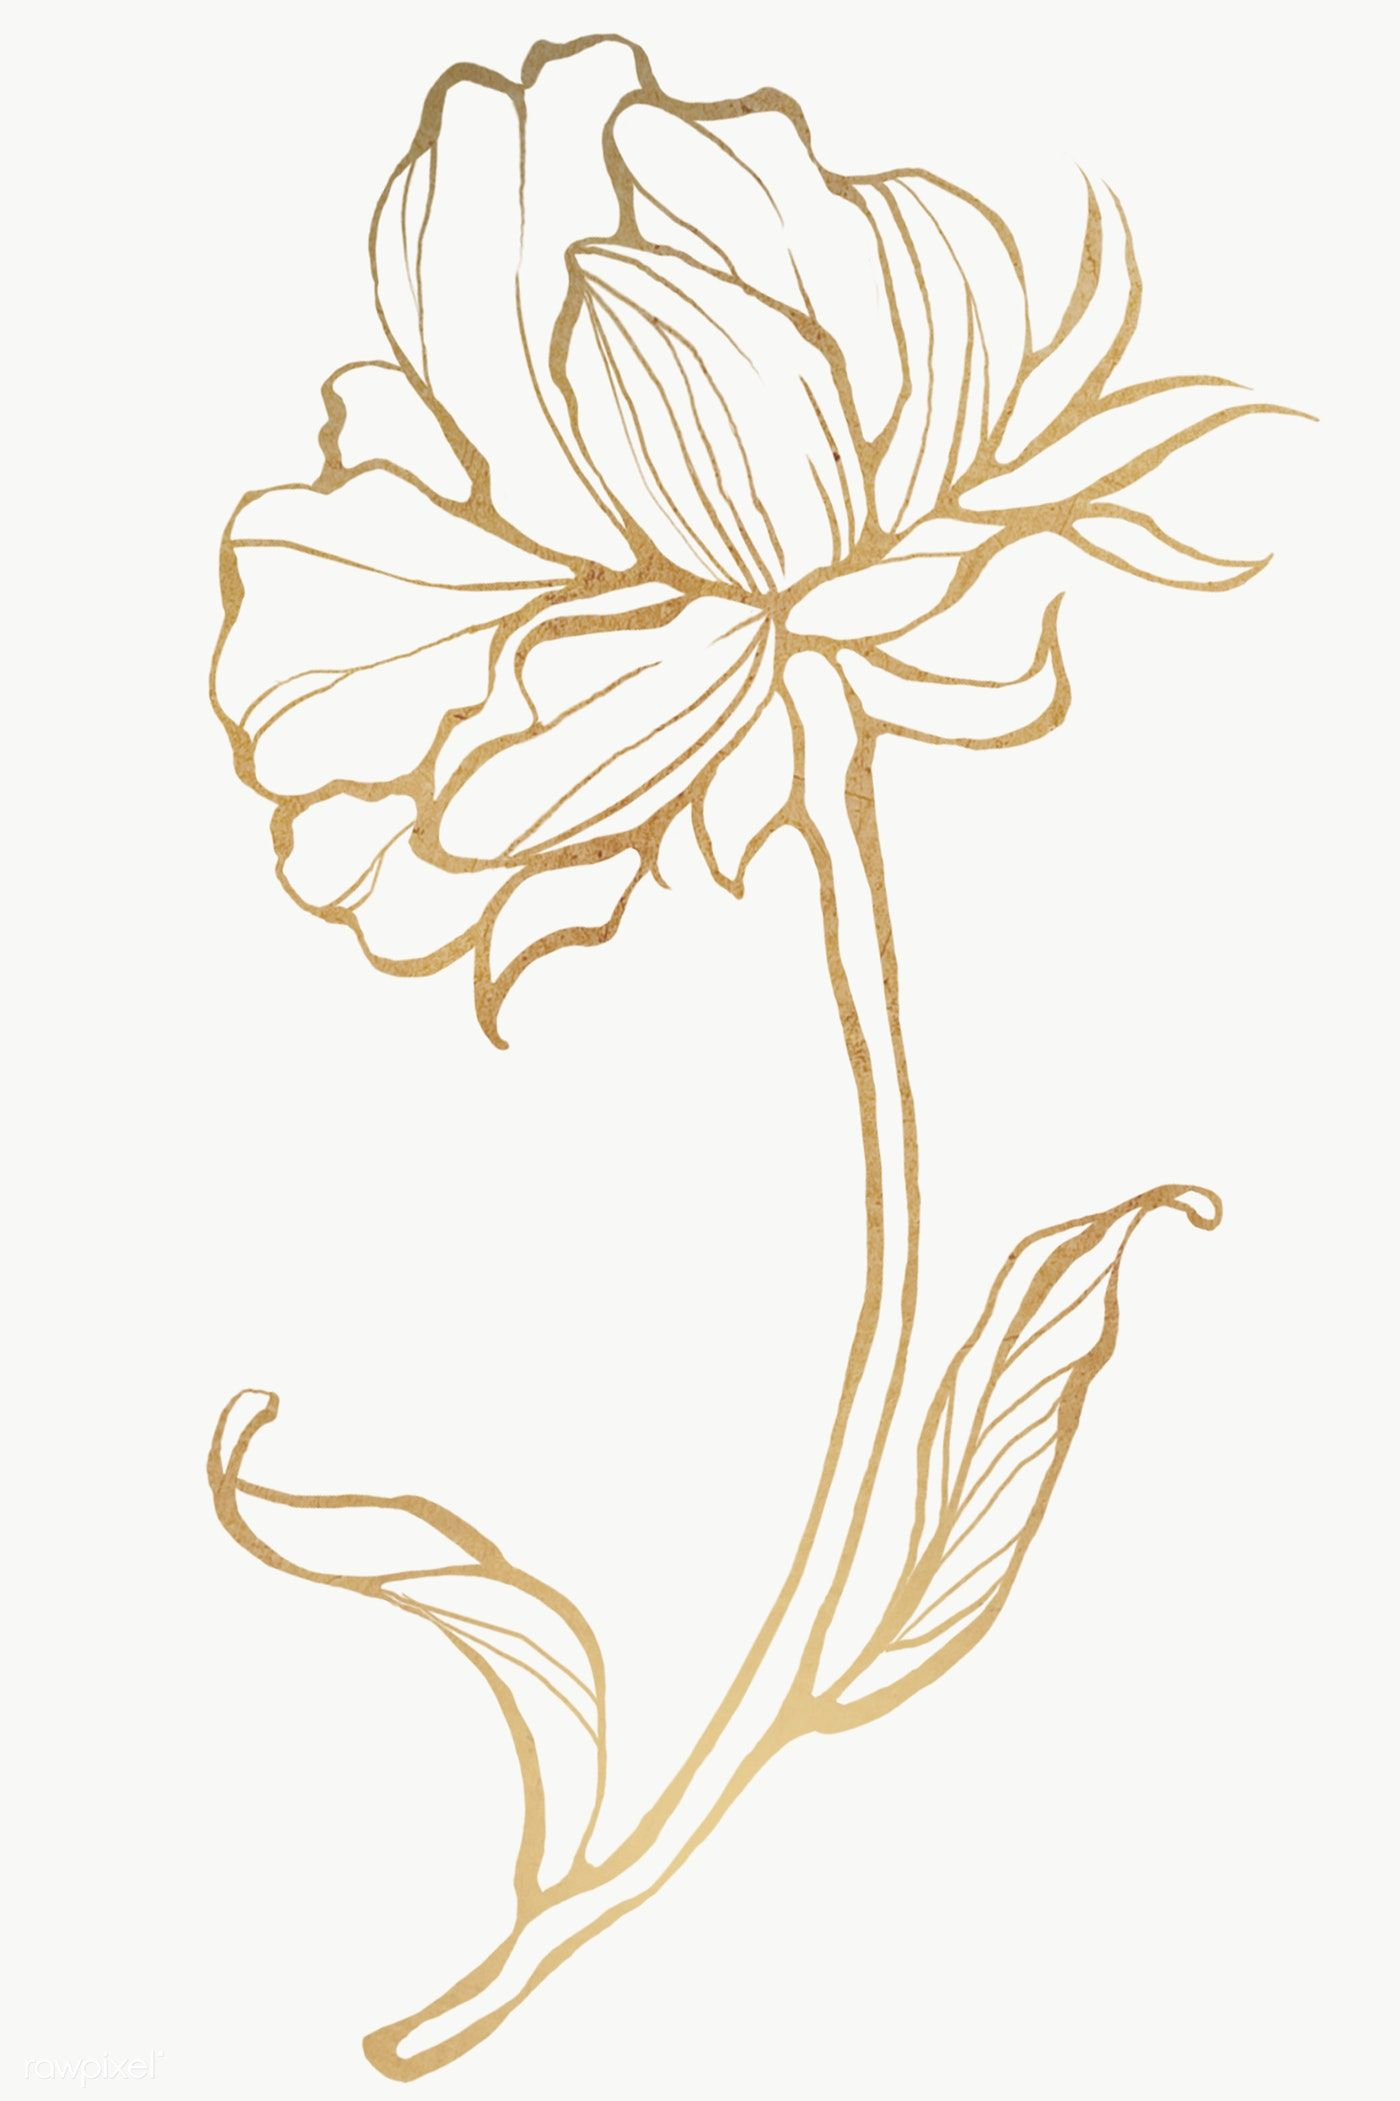 Download Premium Png Of Gold Flower Outline Transparent Png 2019784 Flower Outline Line Art Flowers Flower Drawing